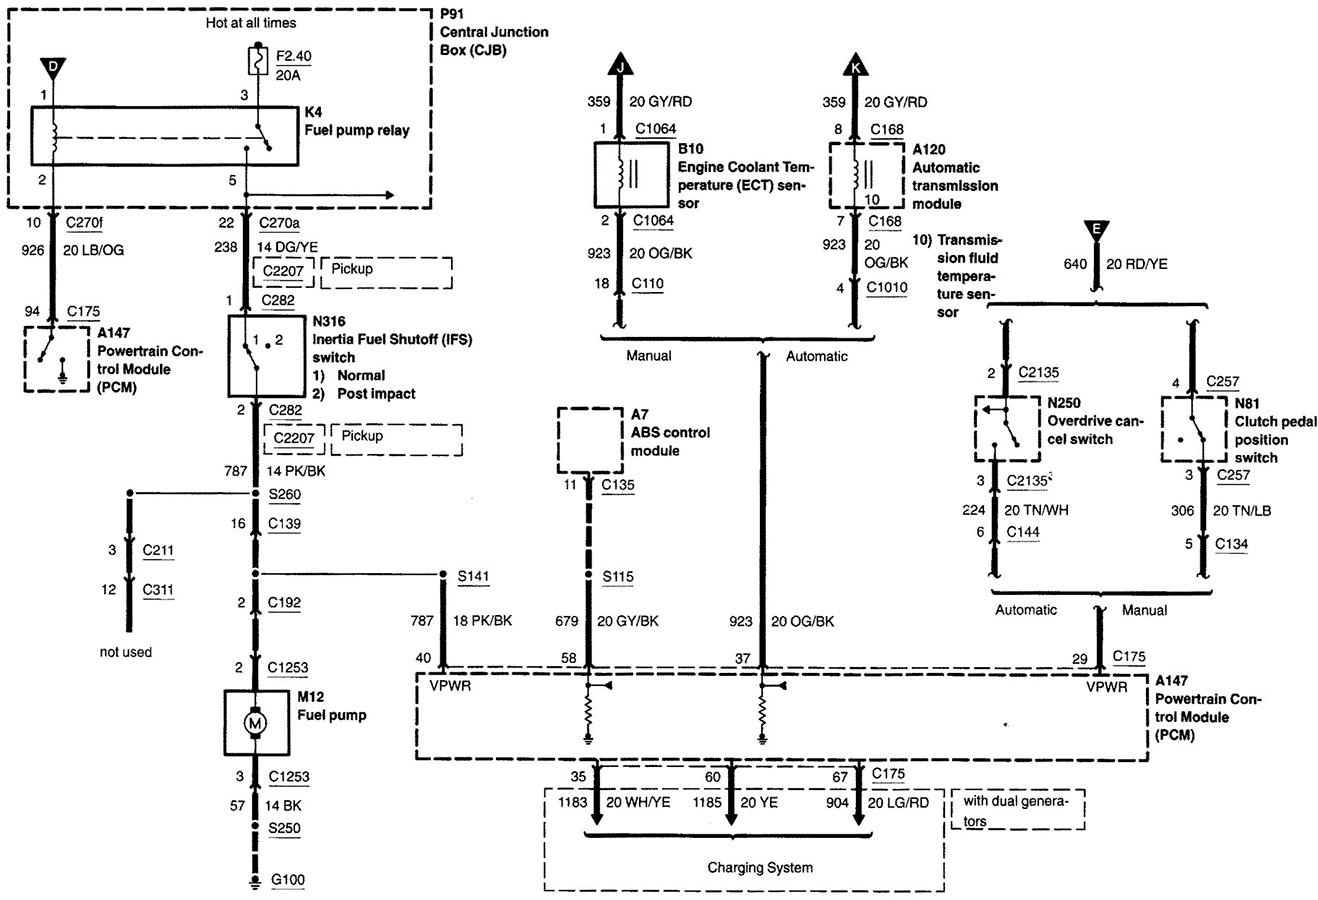 Need Fuel Pump Schematic And Pinout For Diagnostic  Circuit